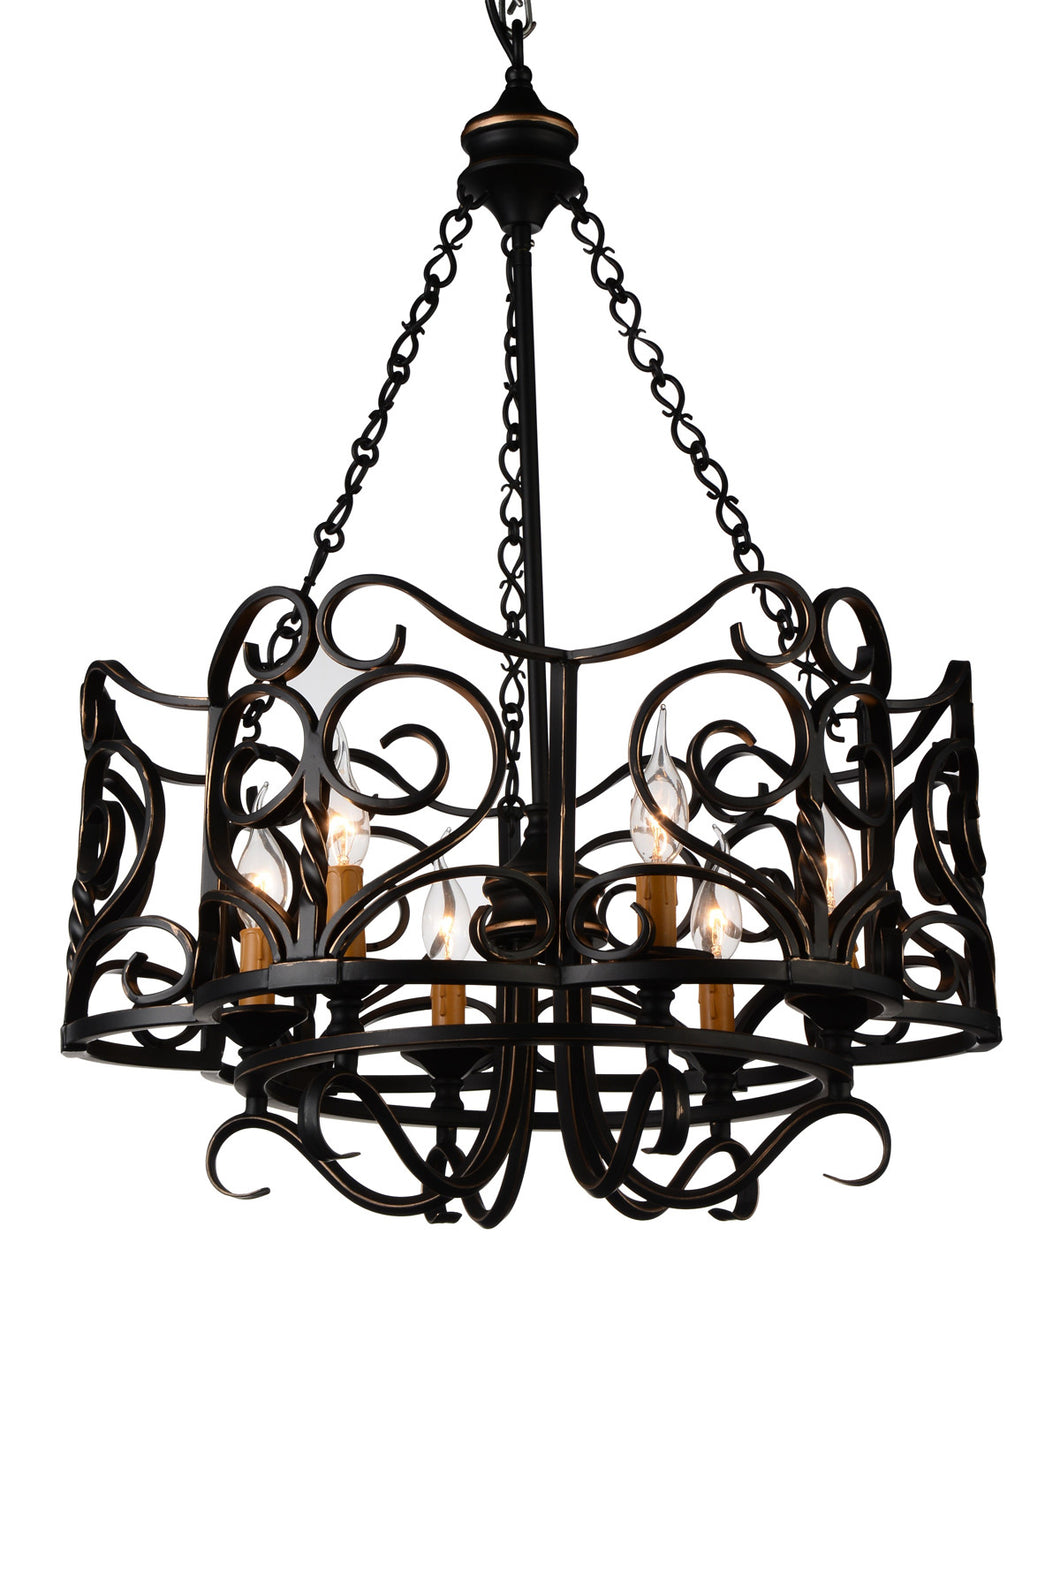 6 Light Up Chandelier with Autumn Bronze finish